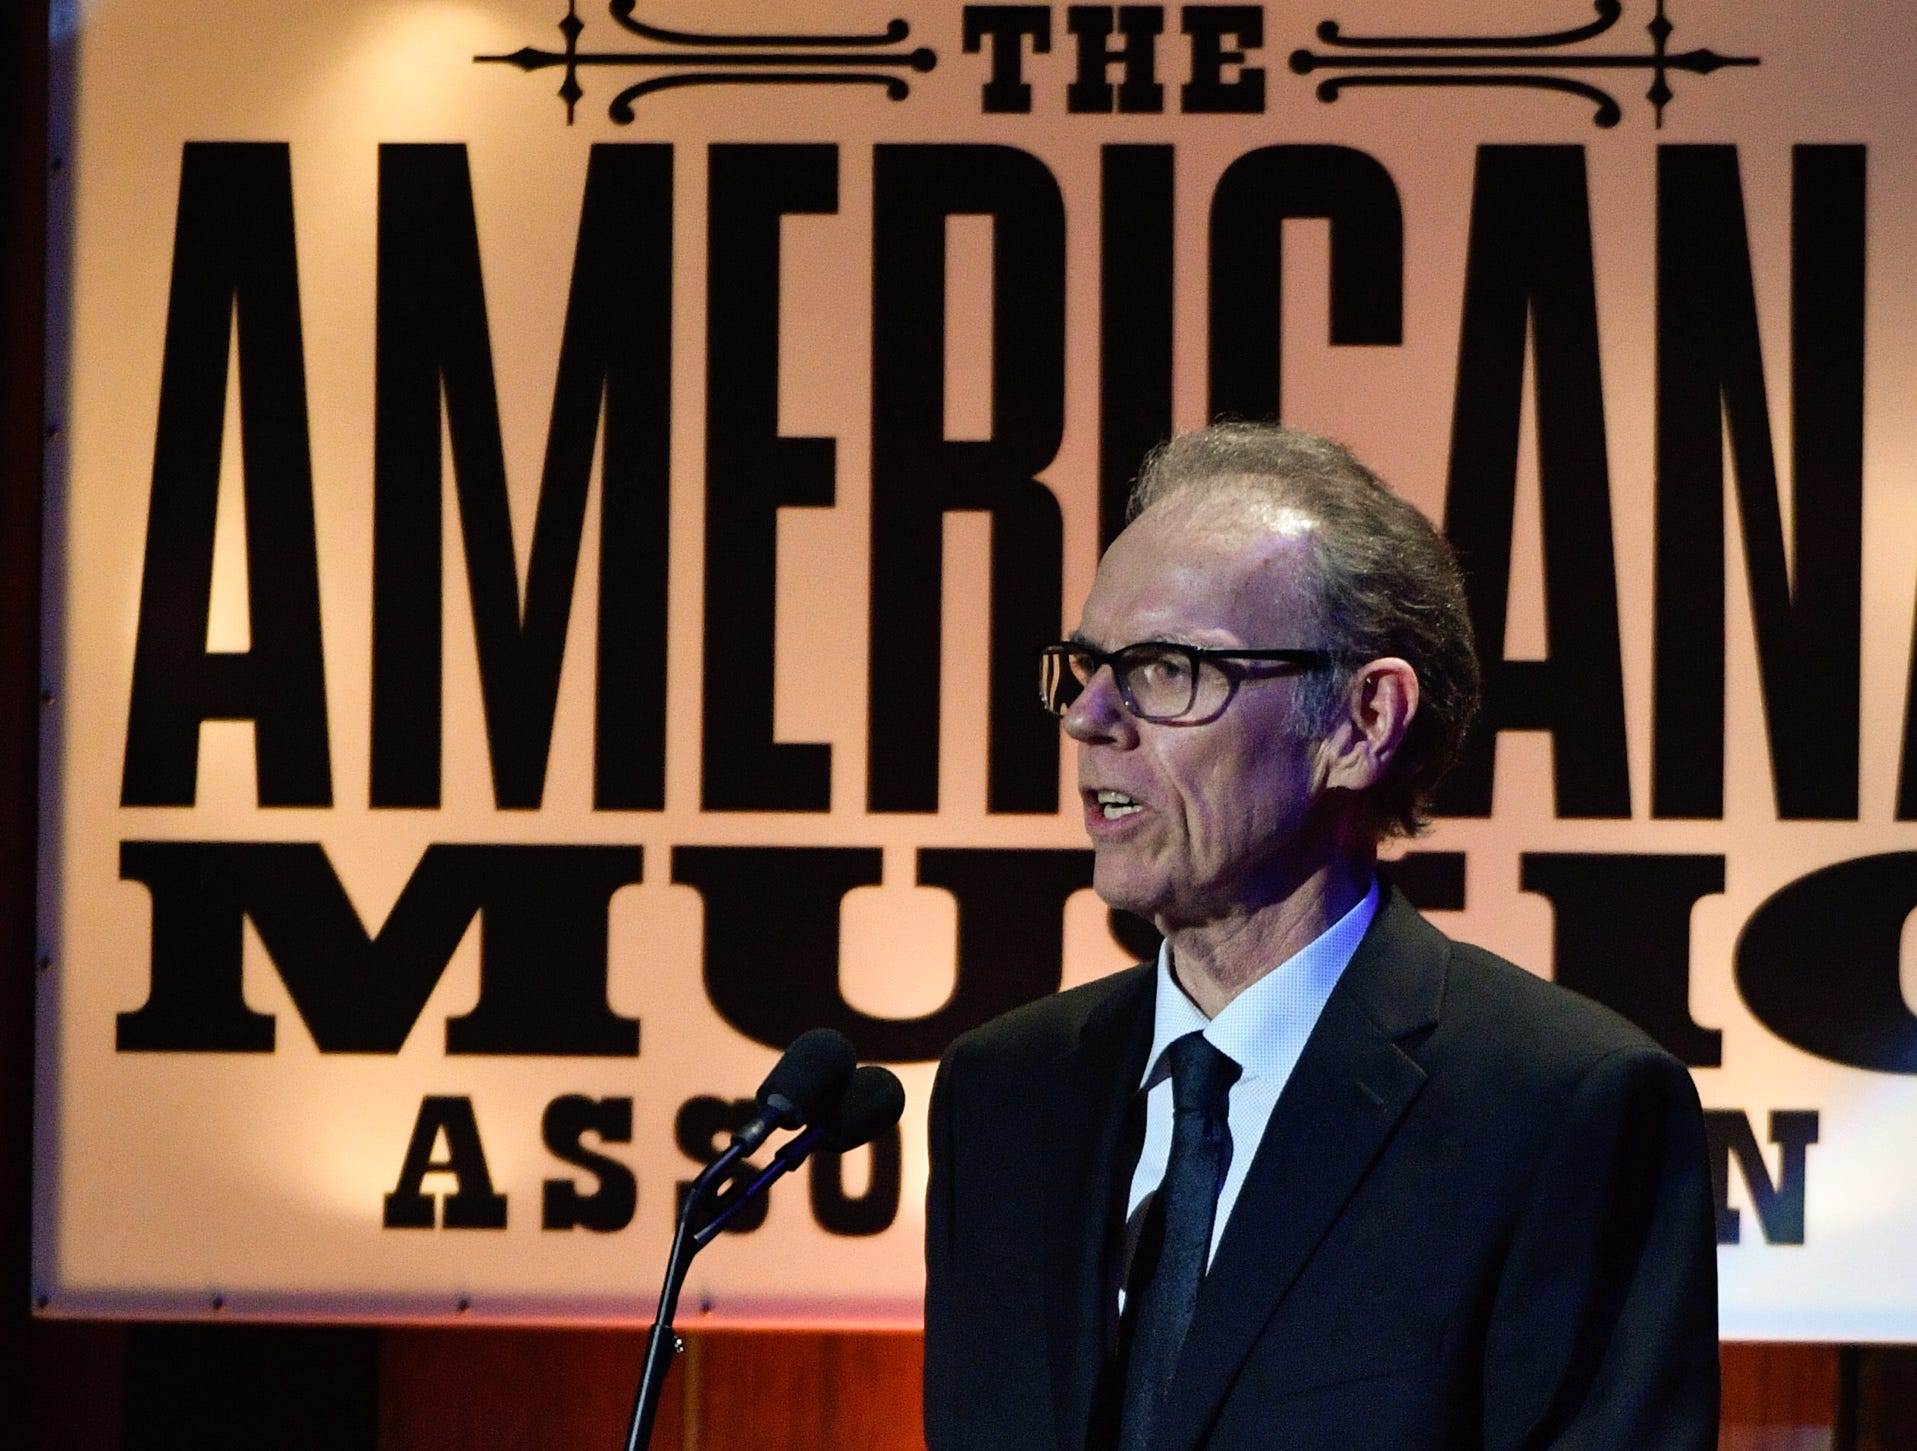 John Hiatt introduces his daughter Lilly Hiatt during the 2018 Americana Honors and Awards show at the Ryman Auditorium in Nashville, Tenn., Wednesday, Sept. 12, 2018.